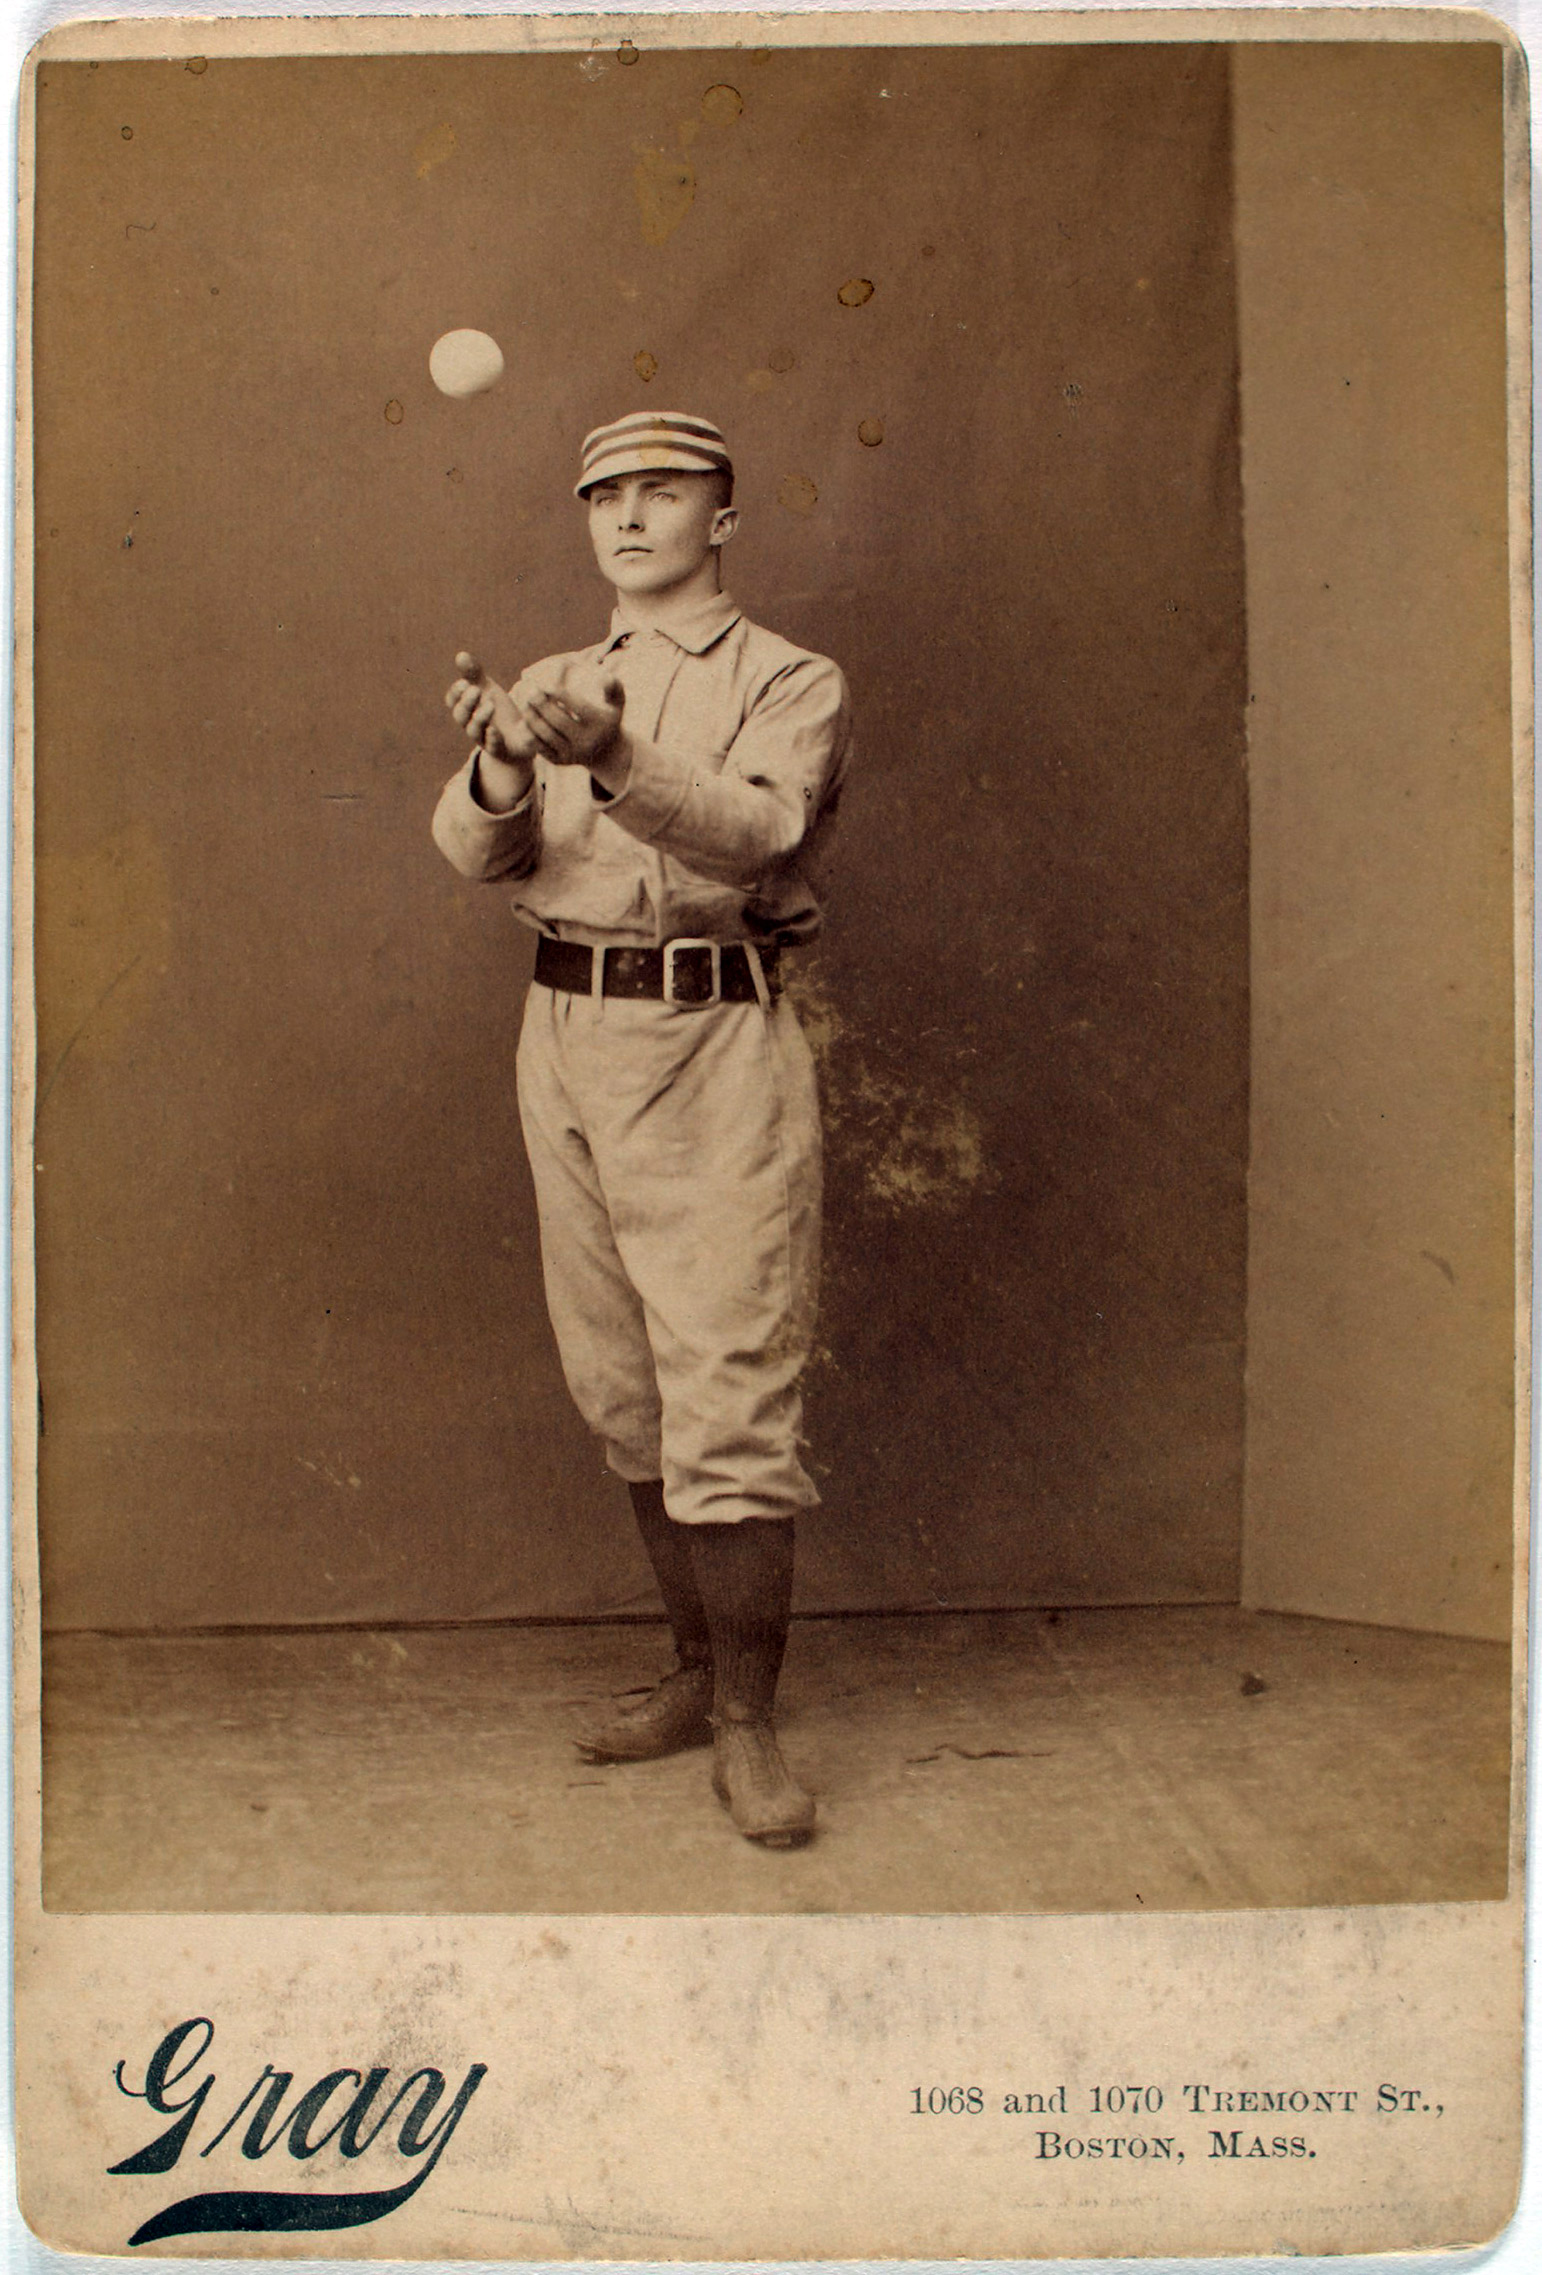 Tommy McCarthy of the Boston Reds. From the A. G. Spalding Baseball Collection.